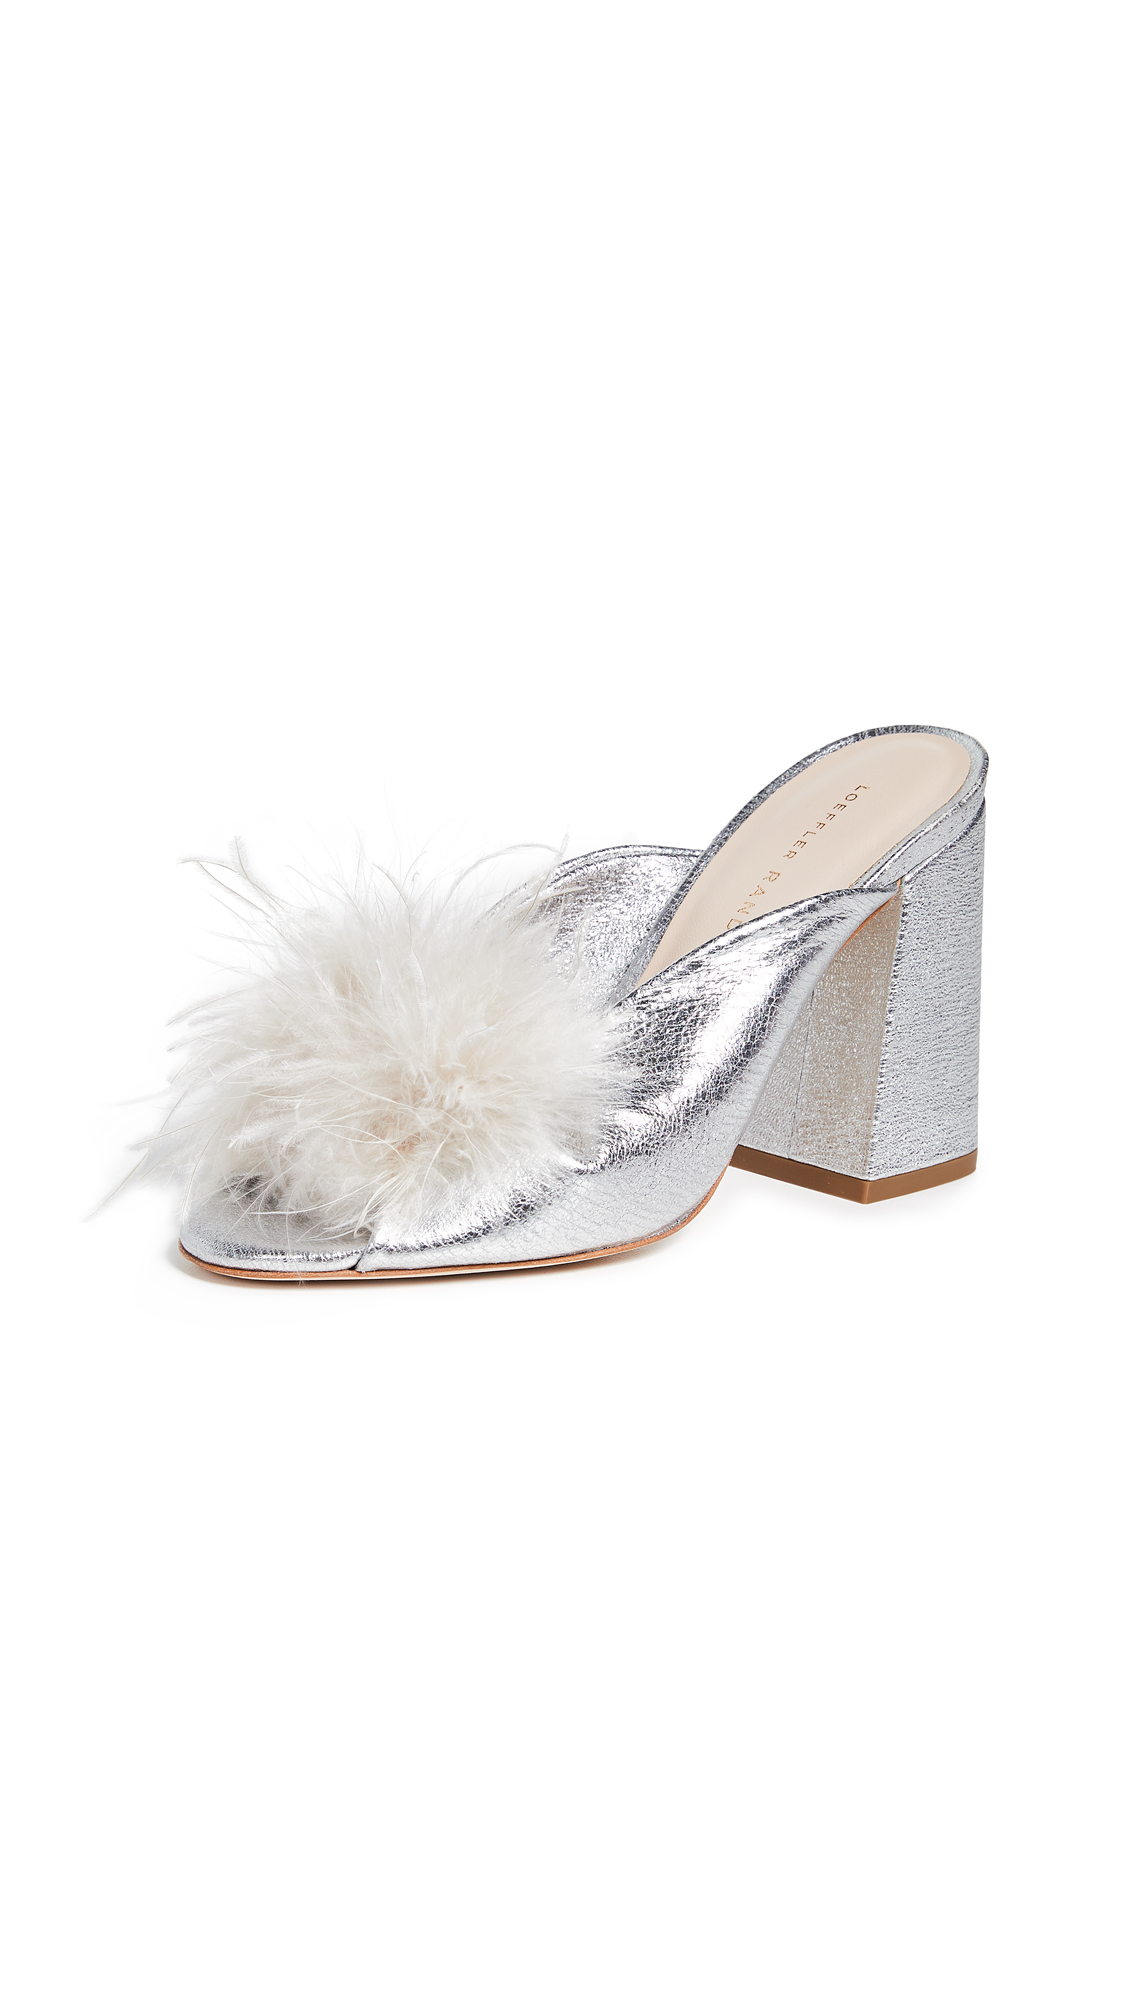 Loeffler Randall Laurel Twist Slides with Feathers - Silver/Light Grey